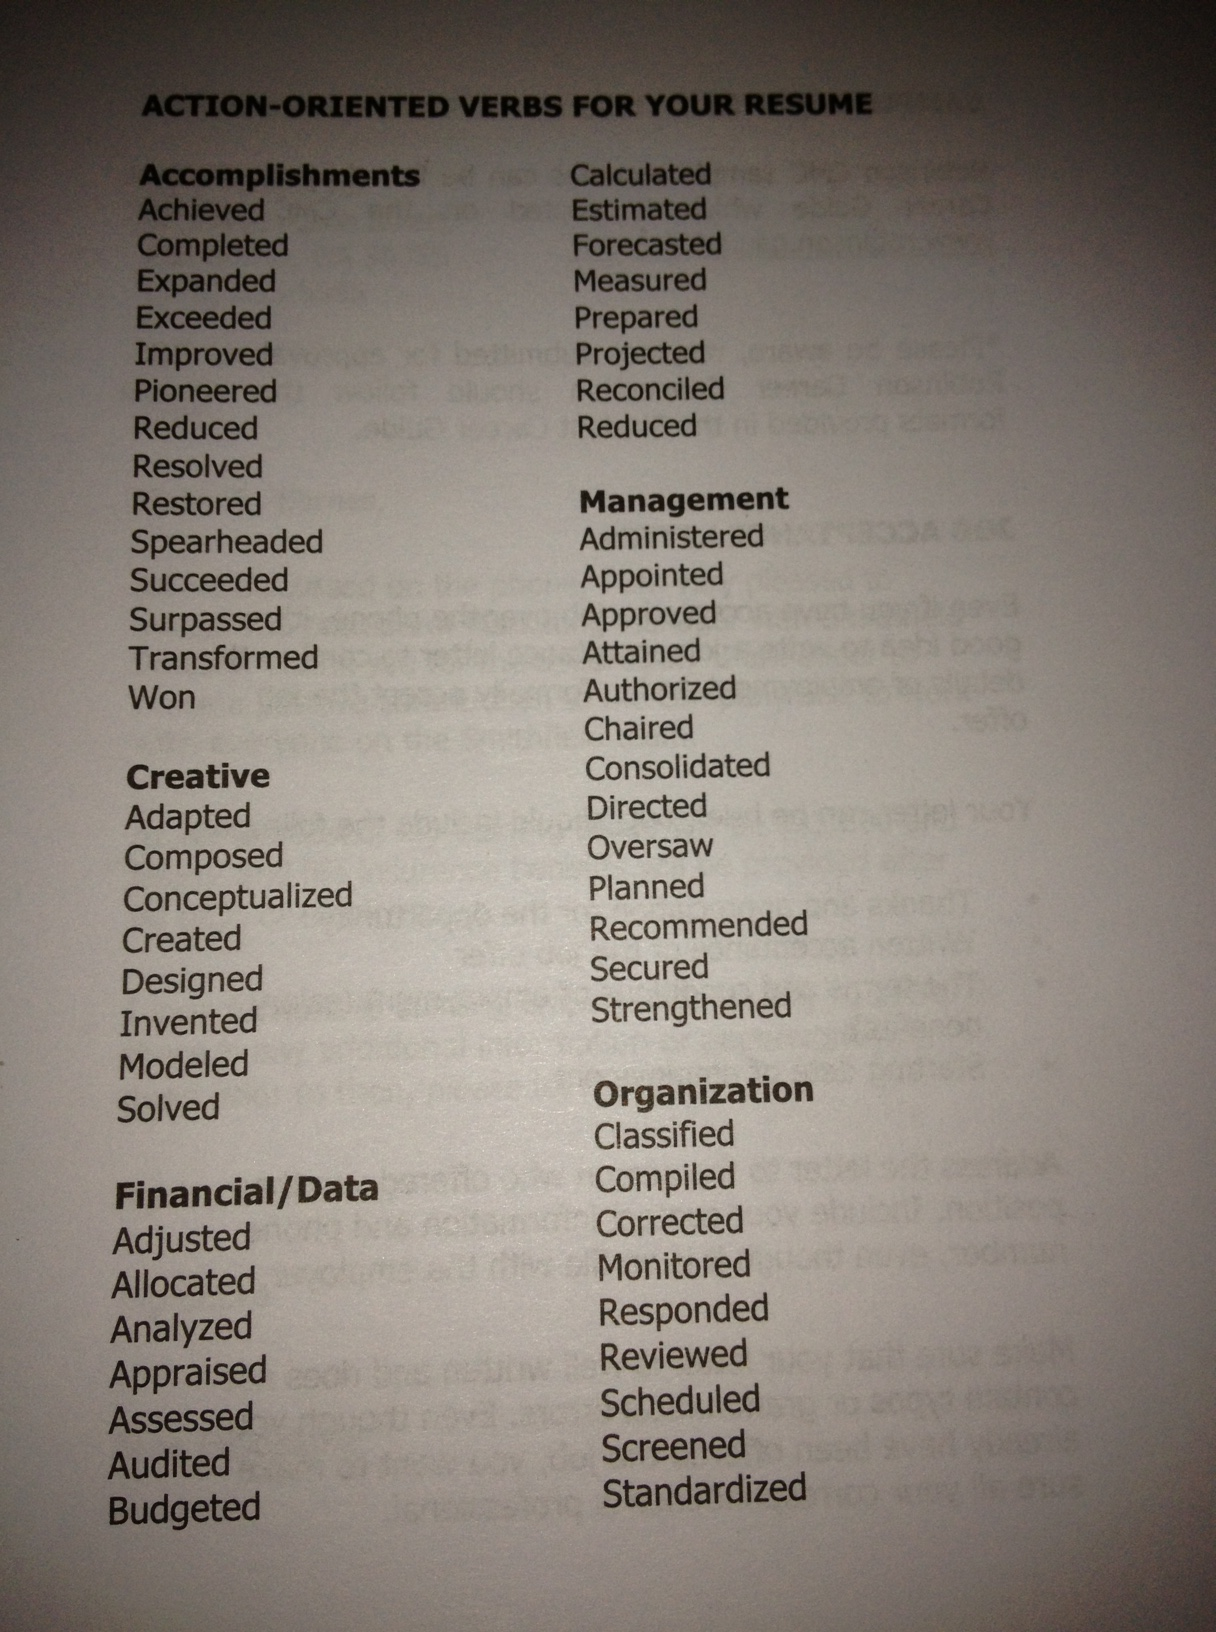 Resume Action Verbs Boston College